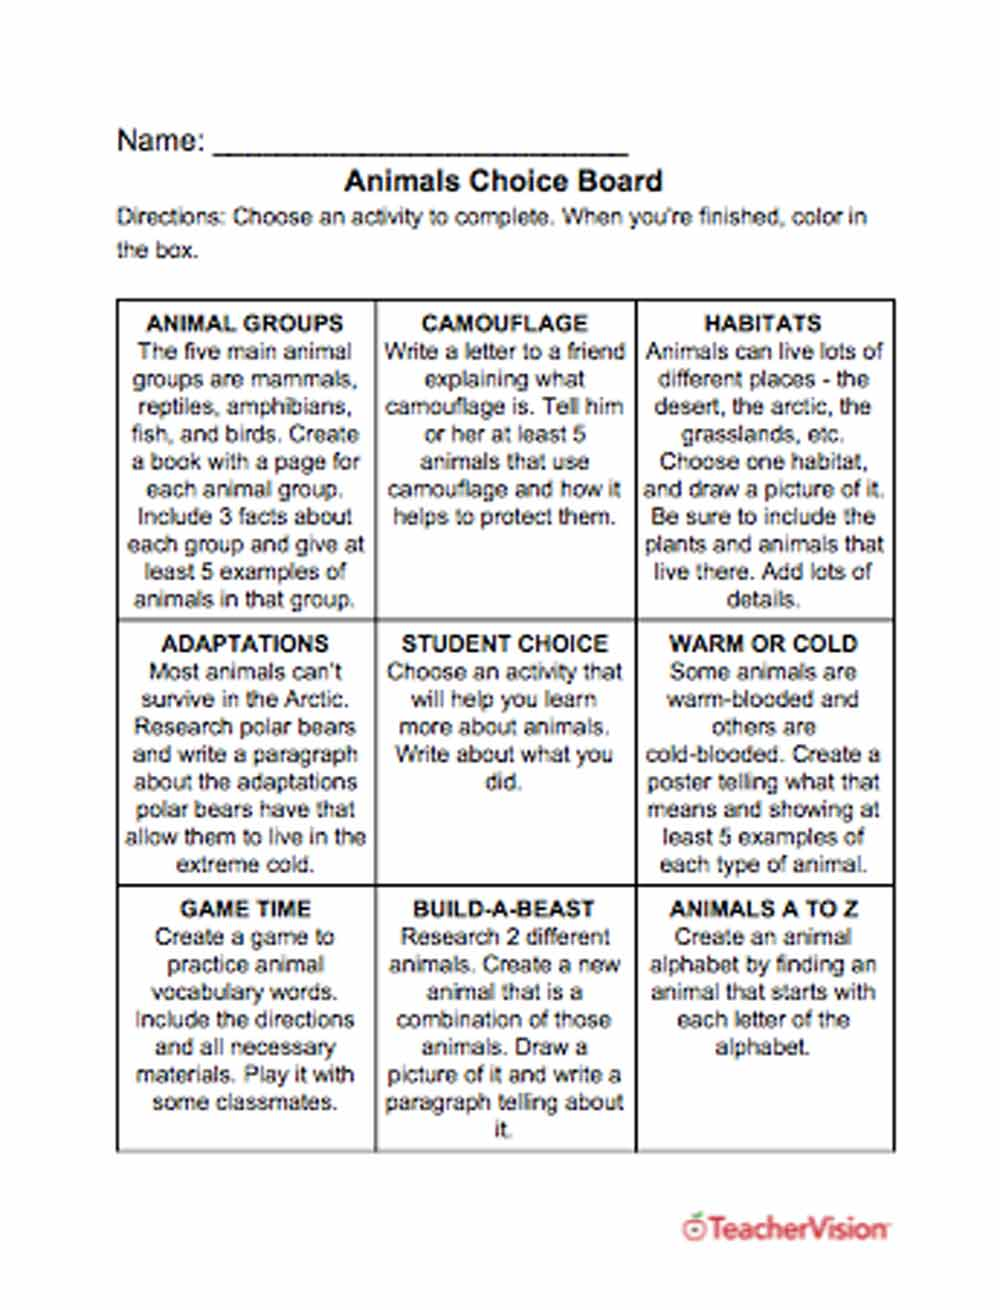 hight resolution of Animals Choice Board - TeacherVision